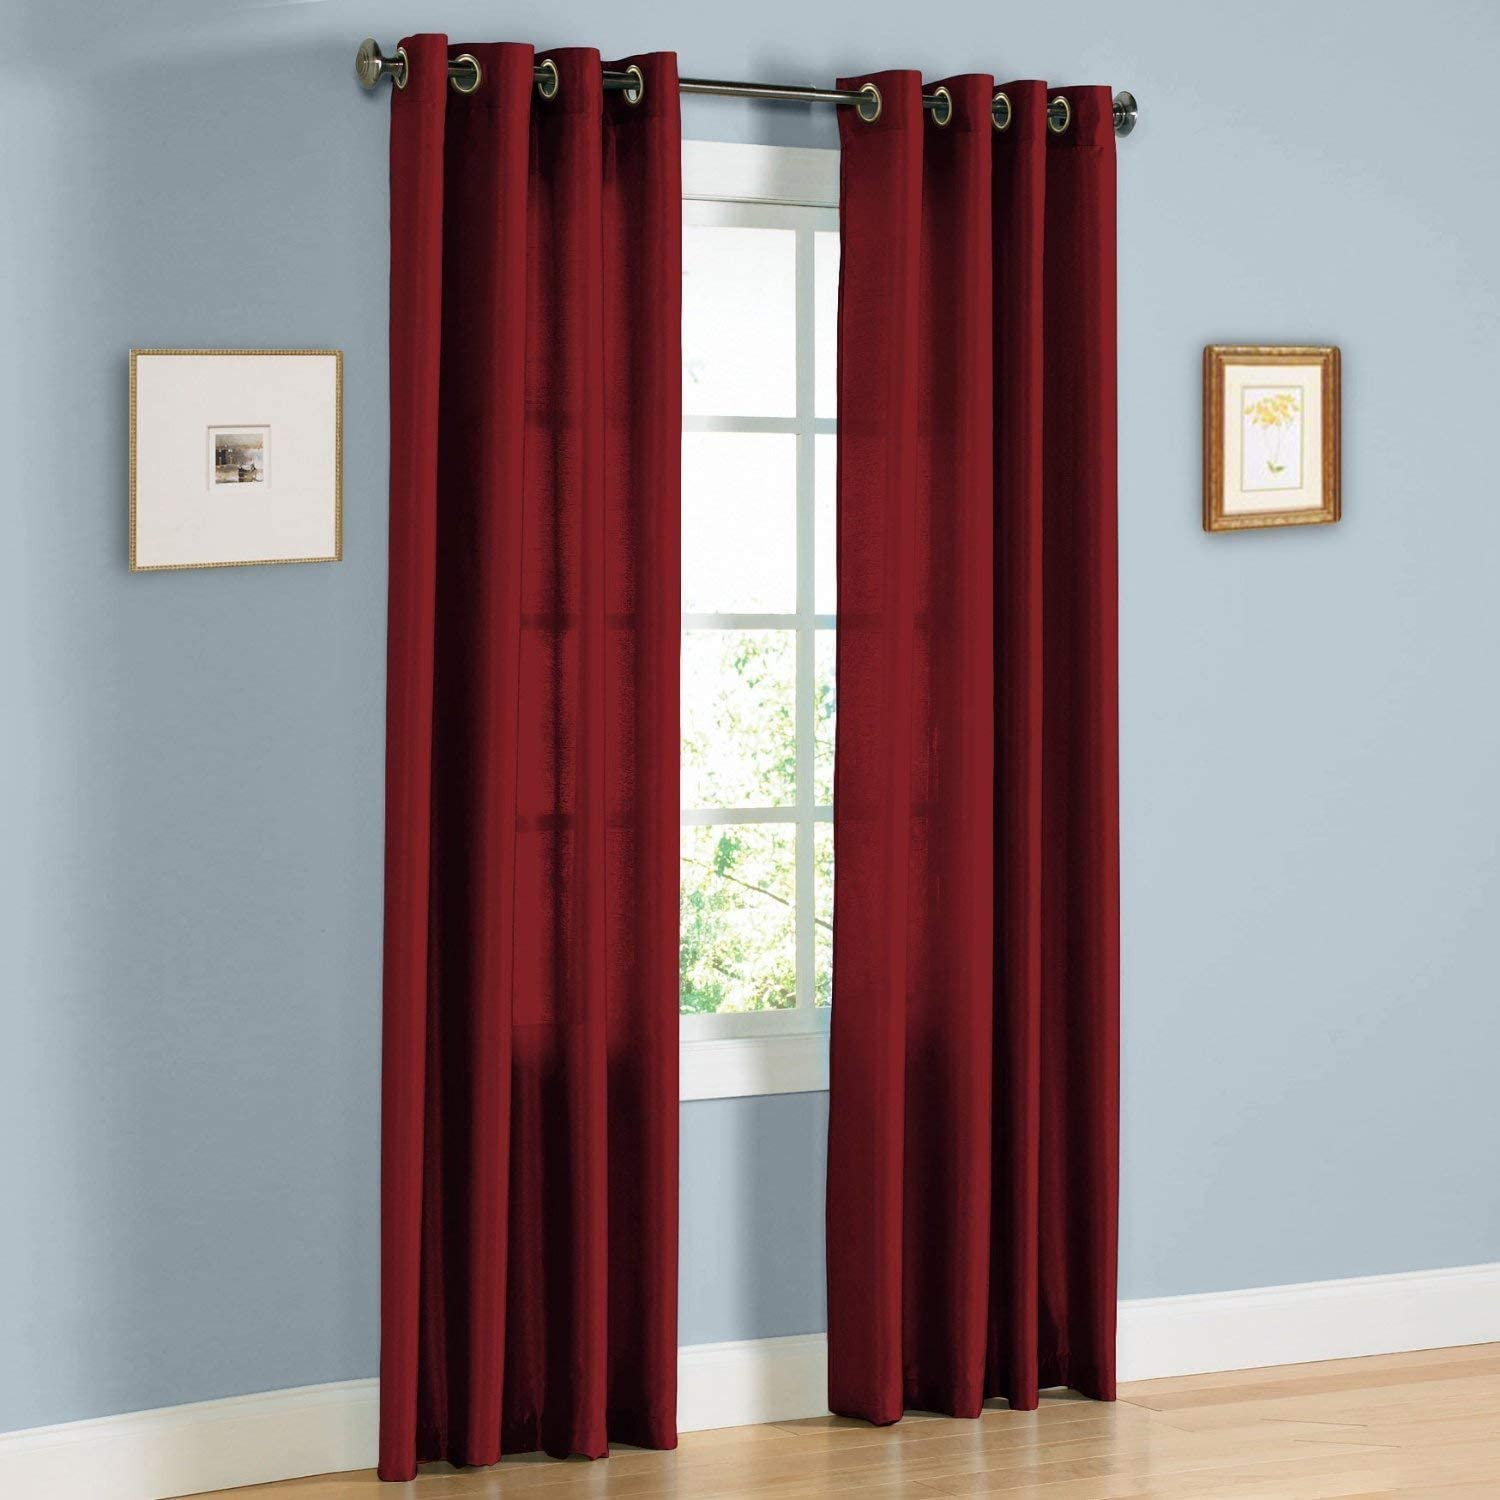 """2 Panel Faux Silk Solid Curtain Drapes with Bronze Grommet (108"""" Total Width by 84"""" L), Solid Color Curtain Panels for Any Bedroom or Patio Door - Non-blackouts/Semi Sheer Panels - Burgundy"""